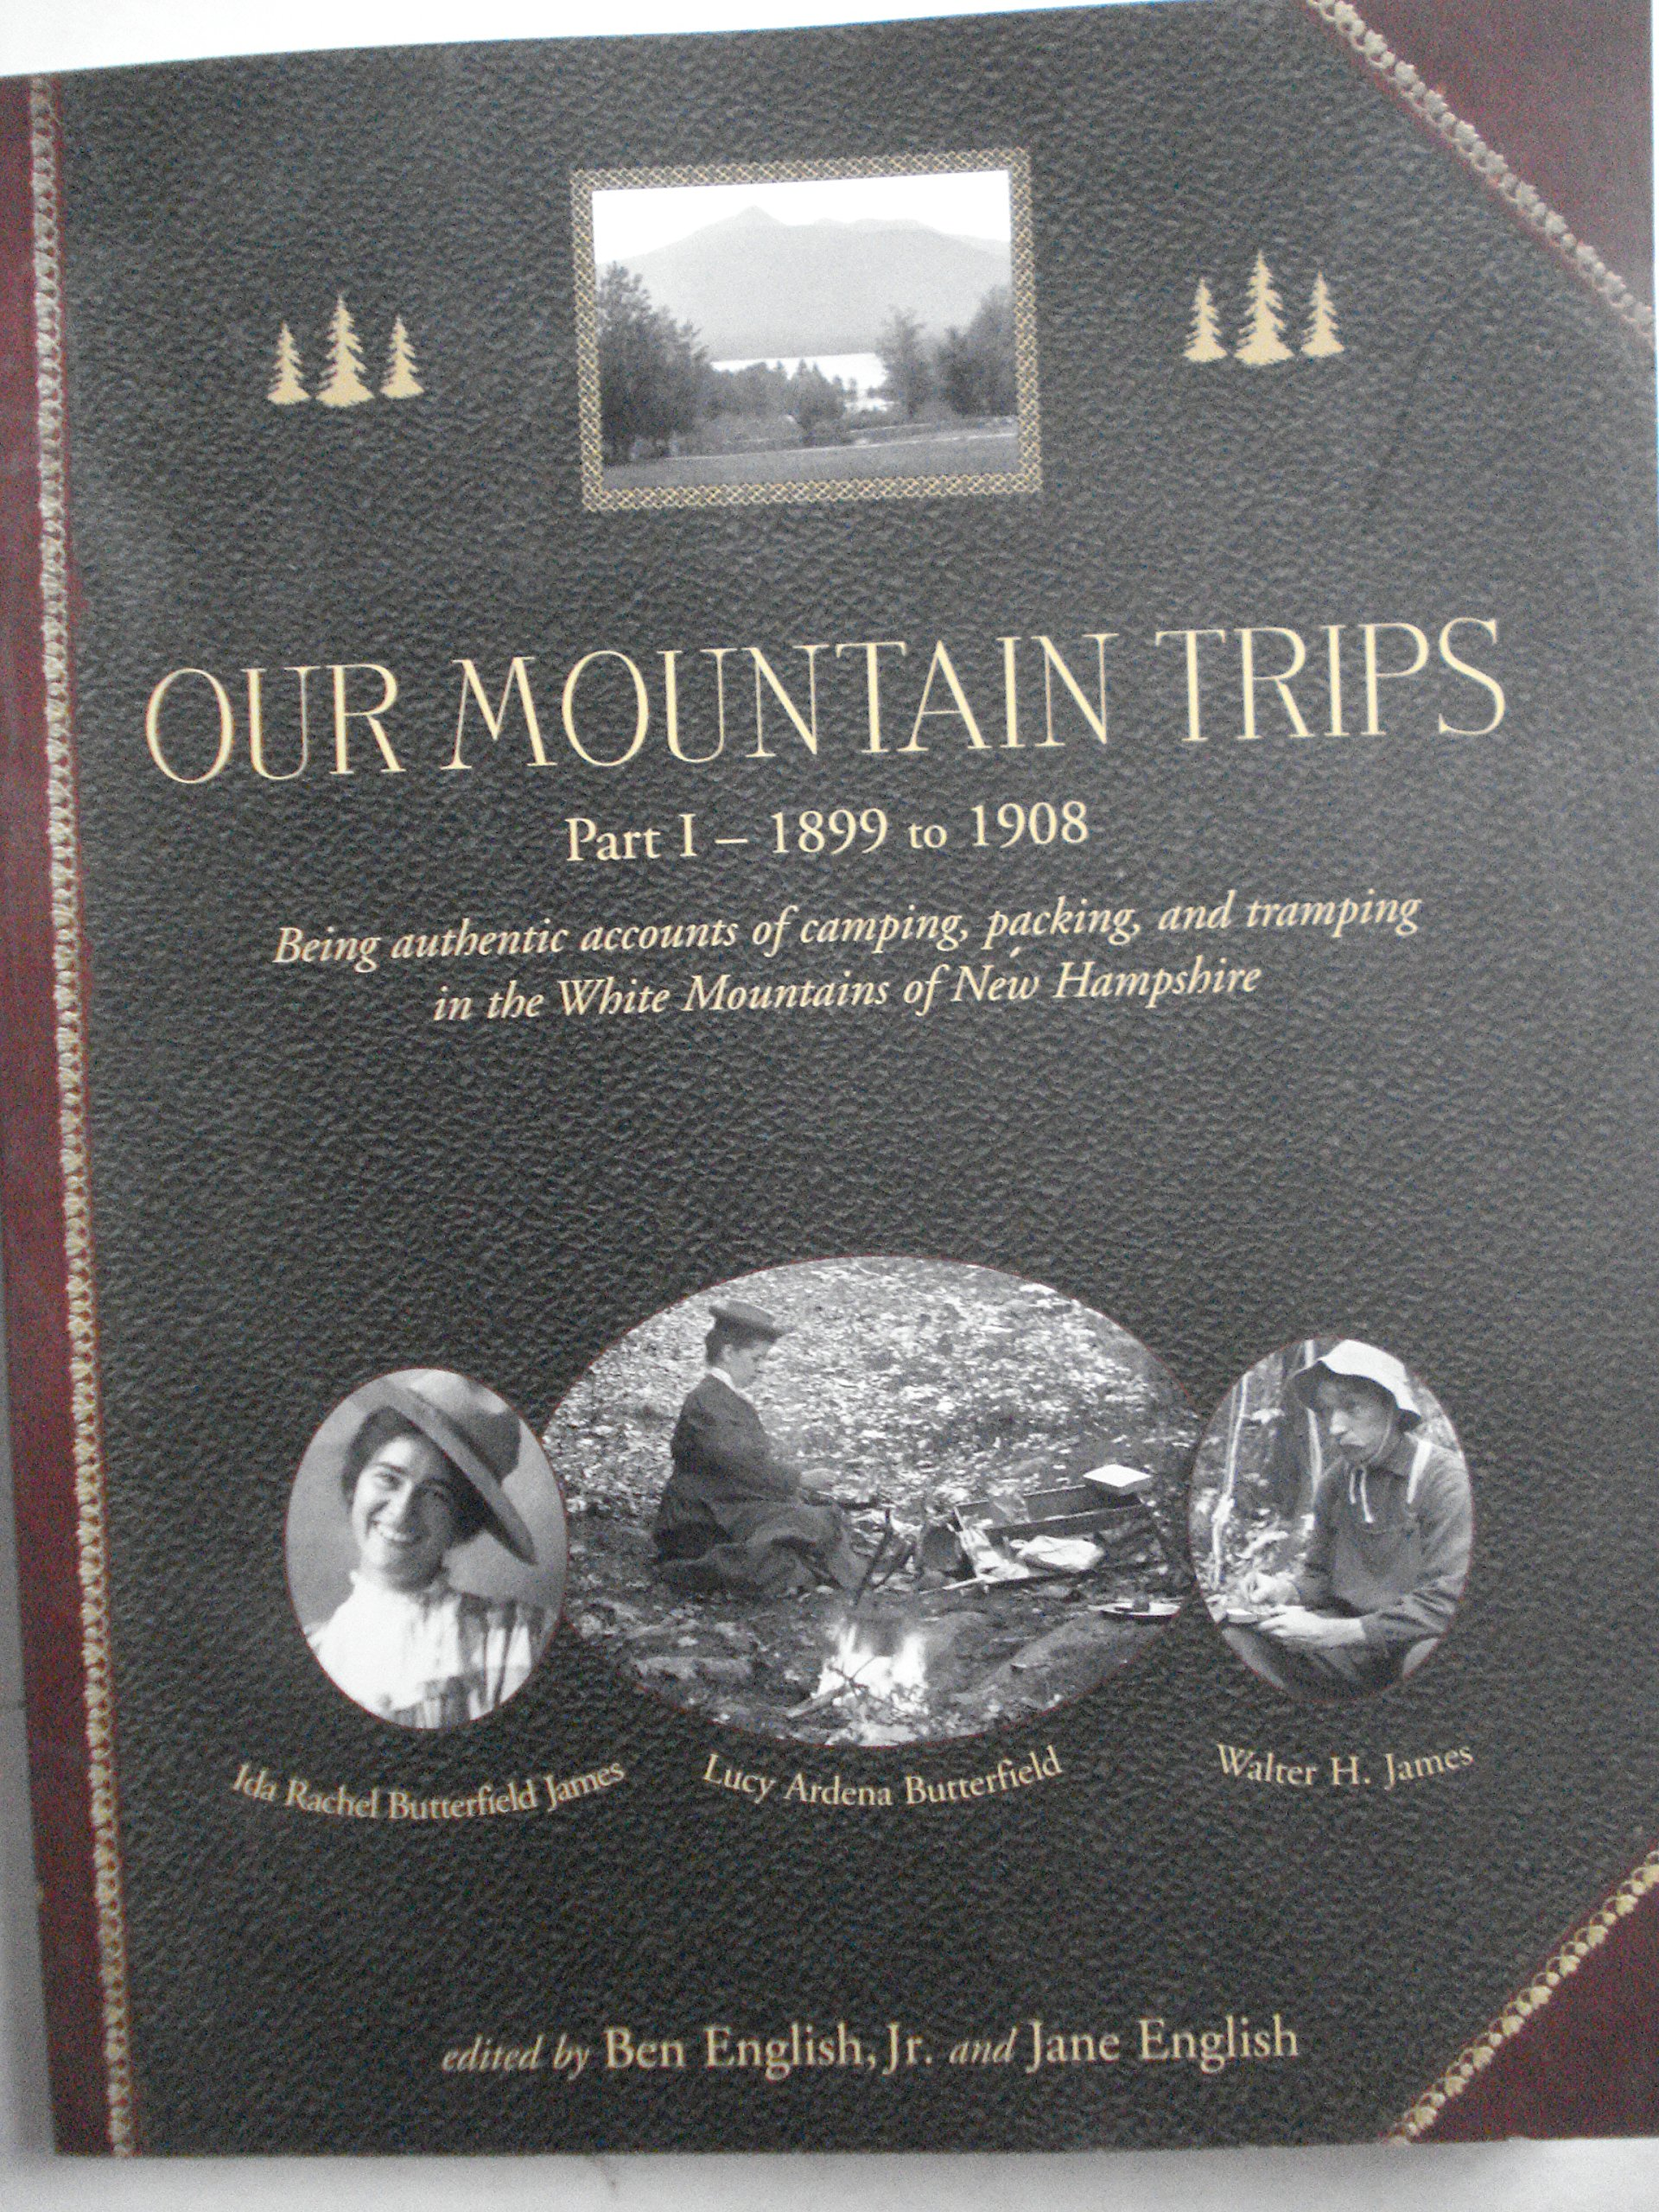 Download Our Mountain Trips 1899 to 1908: Being Authentic Accounts of Camping, Packing, and Tramping in the White Mountains of New Hampshire ebook